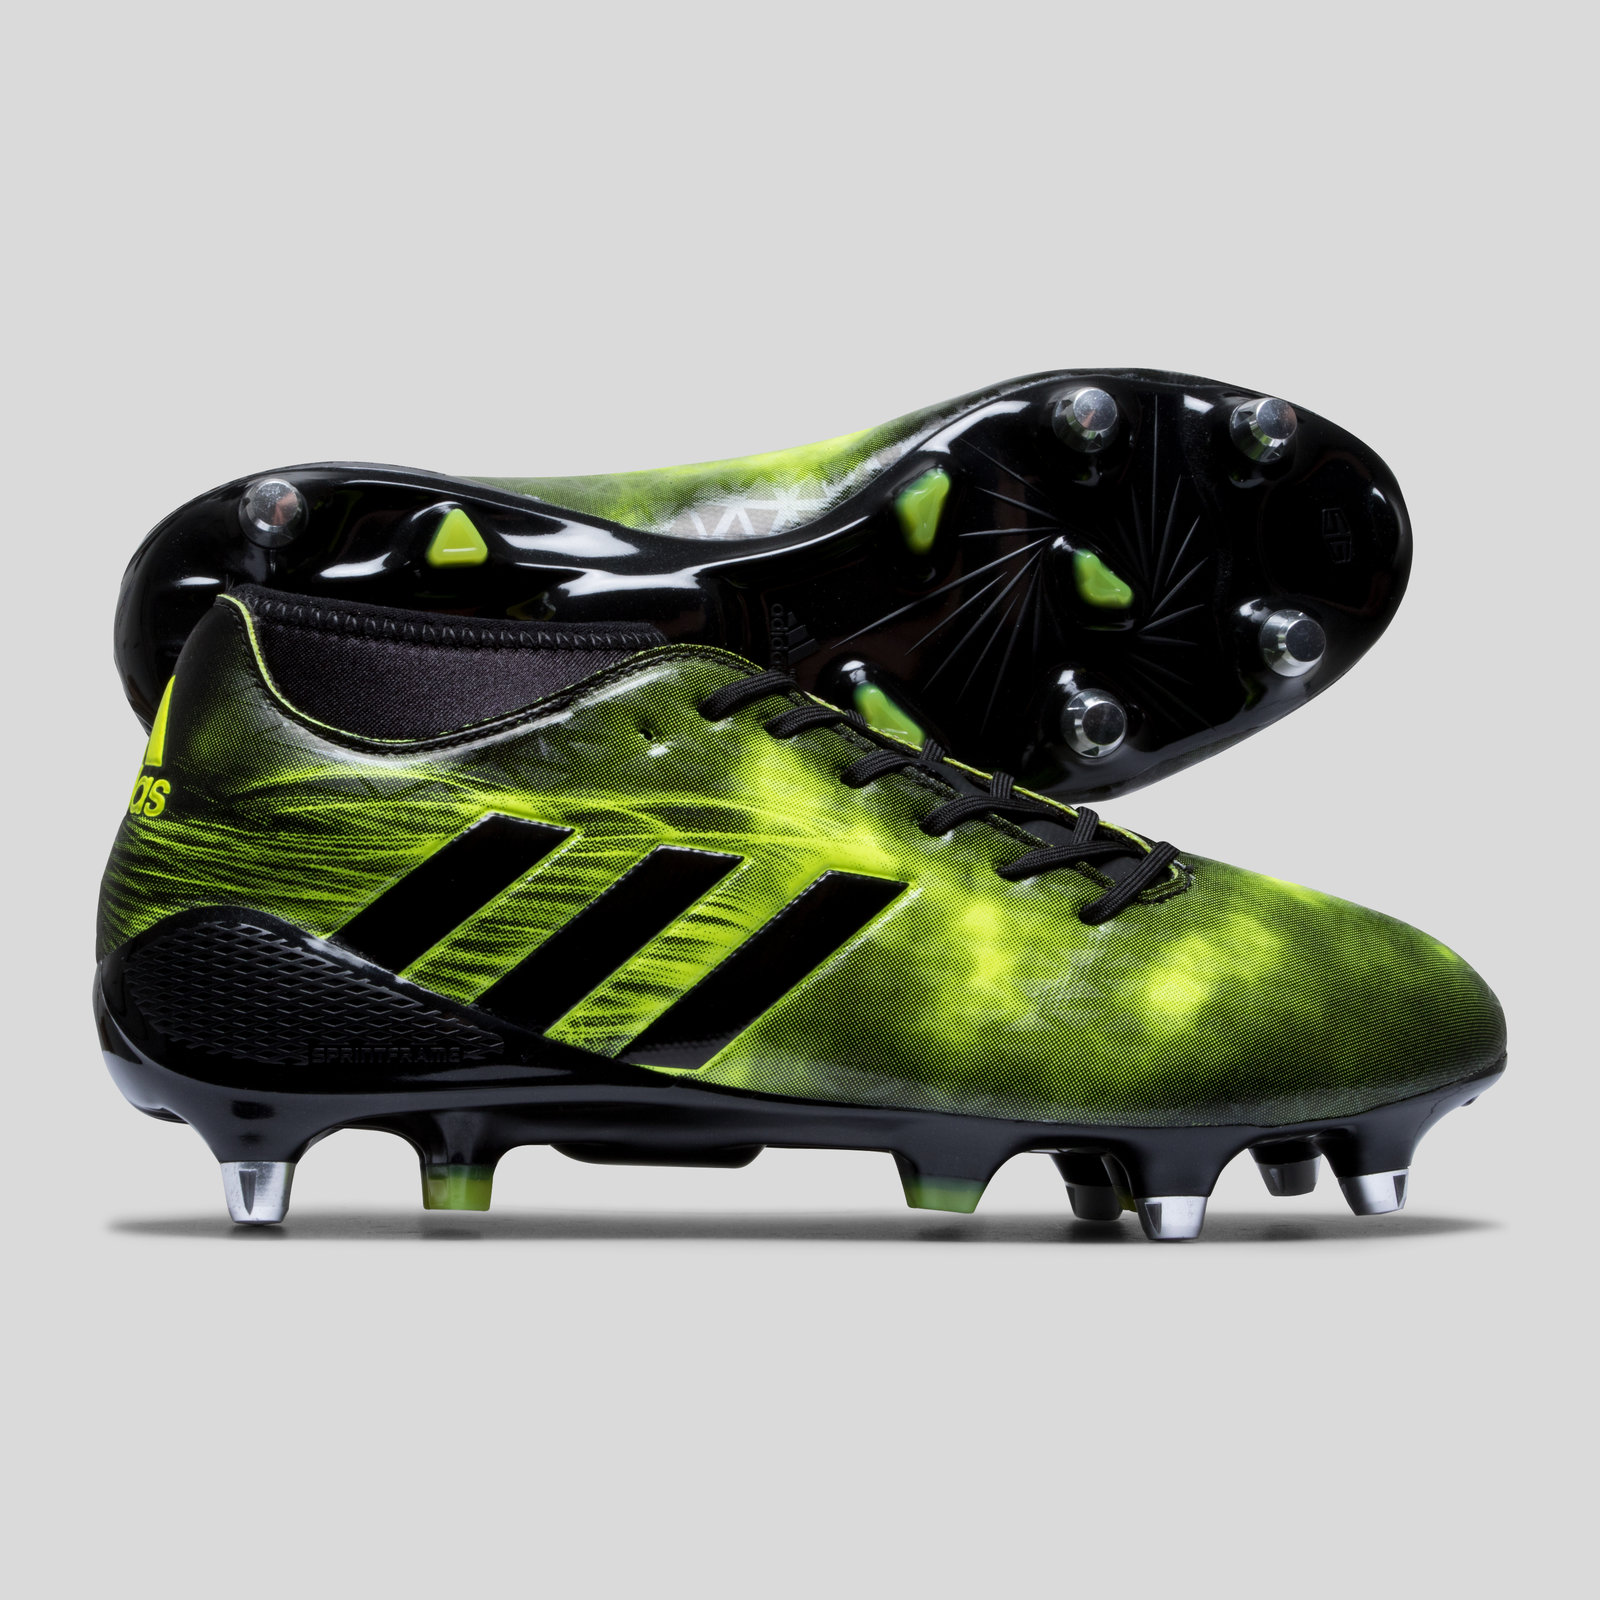 Image of adizero Malice SG Rugby Boots